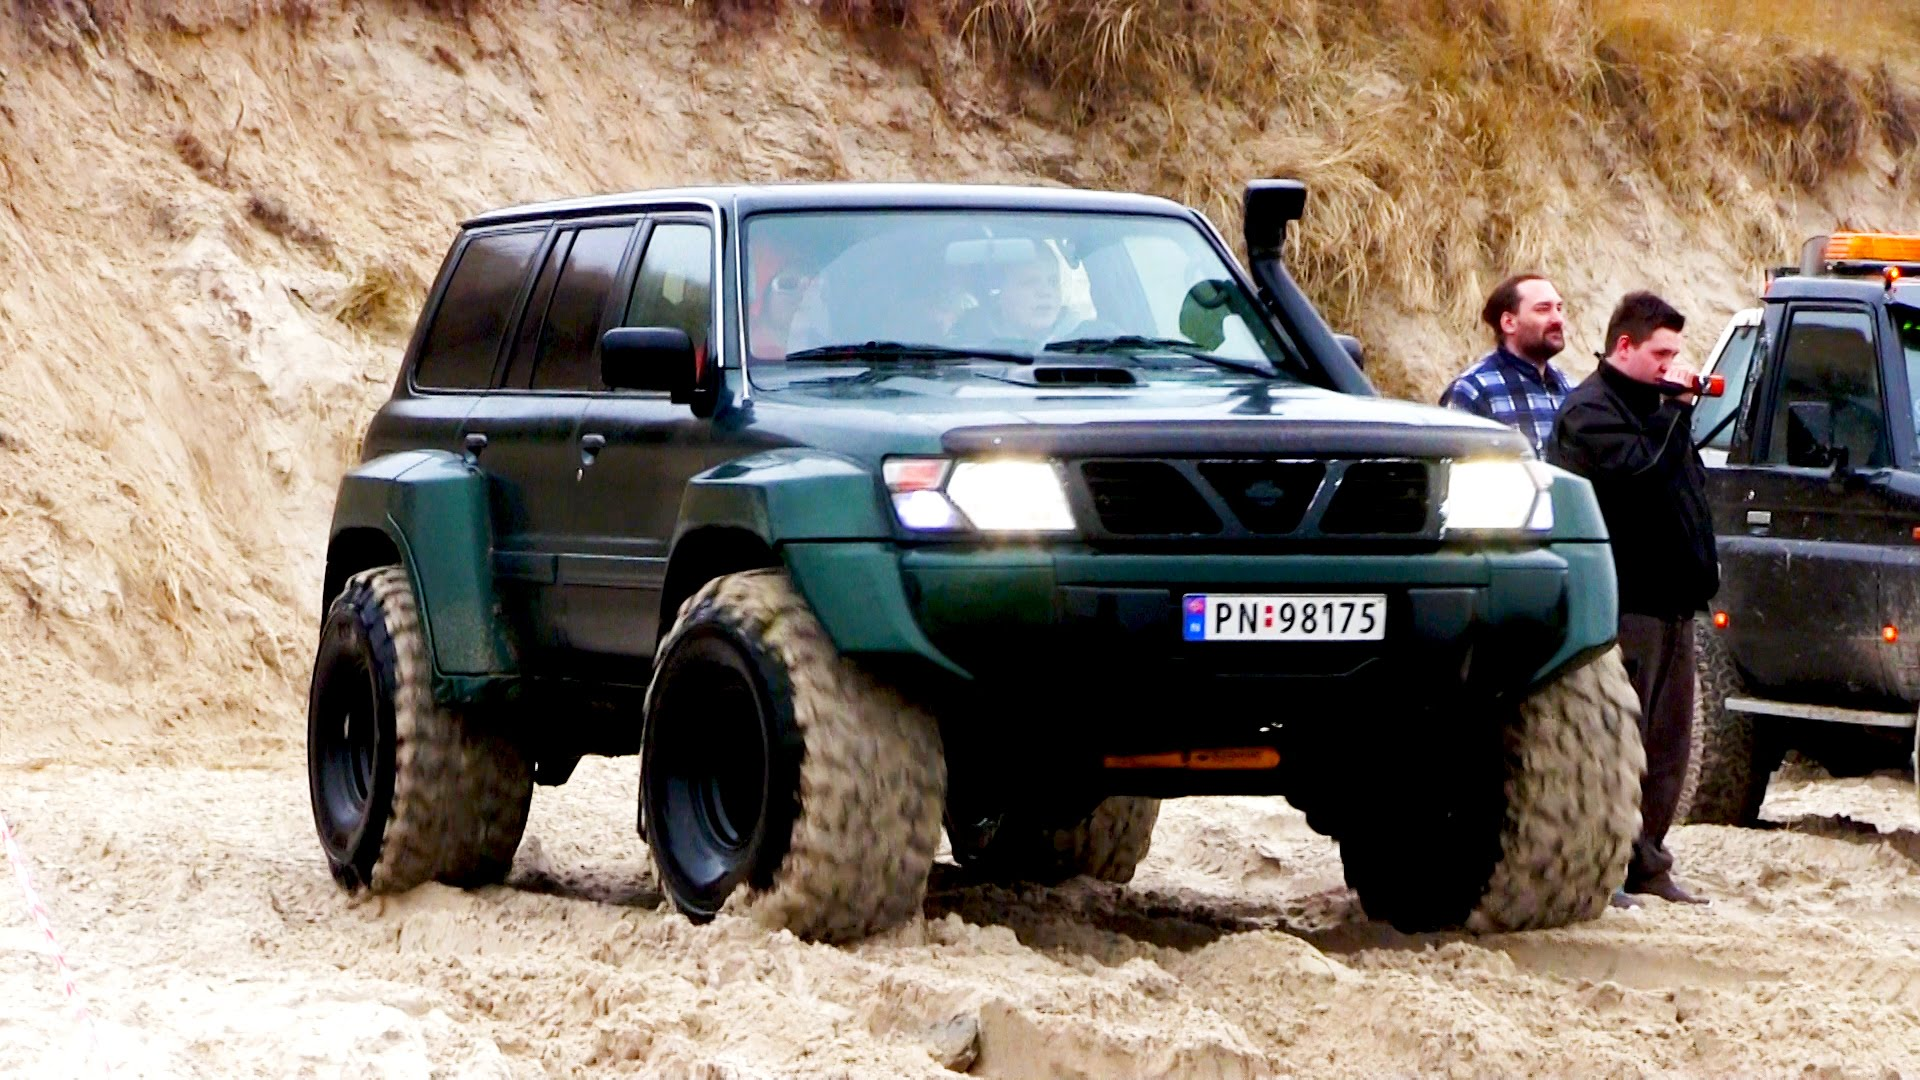 Nissan Patrol GR 4x4 at Løkken Beach Tour 2015 - YouTube